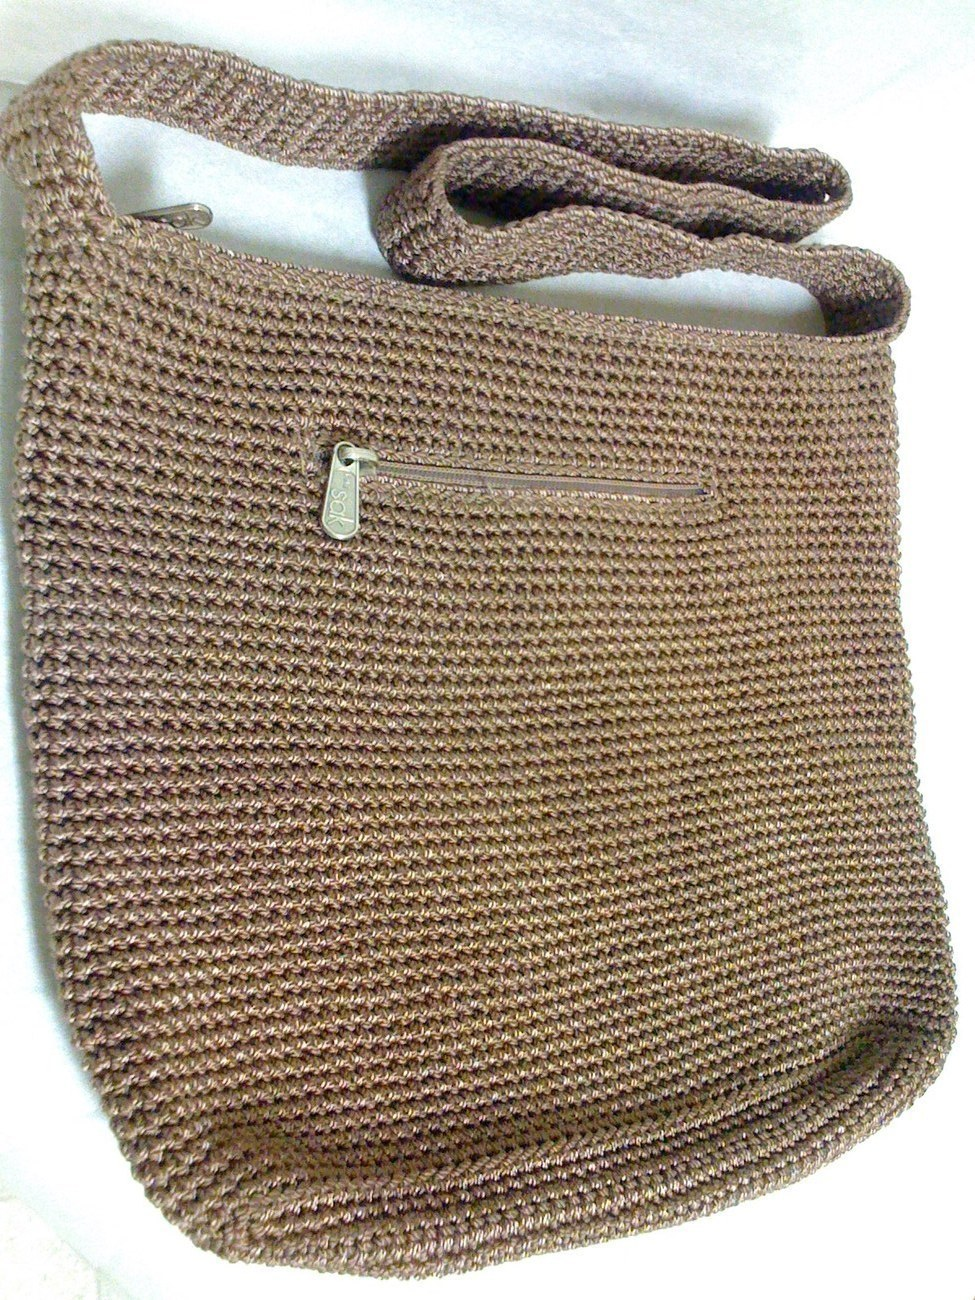 The Sak Bags Crochet : THE SAK CLASSIC TAN CROCHET BAG Large - Handbags & Purses